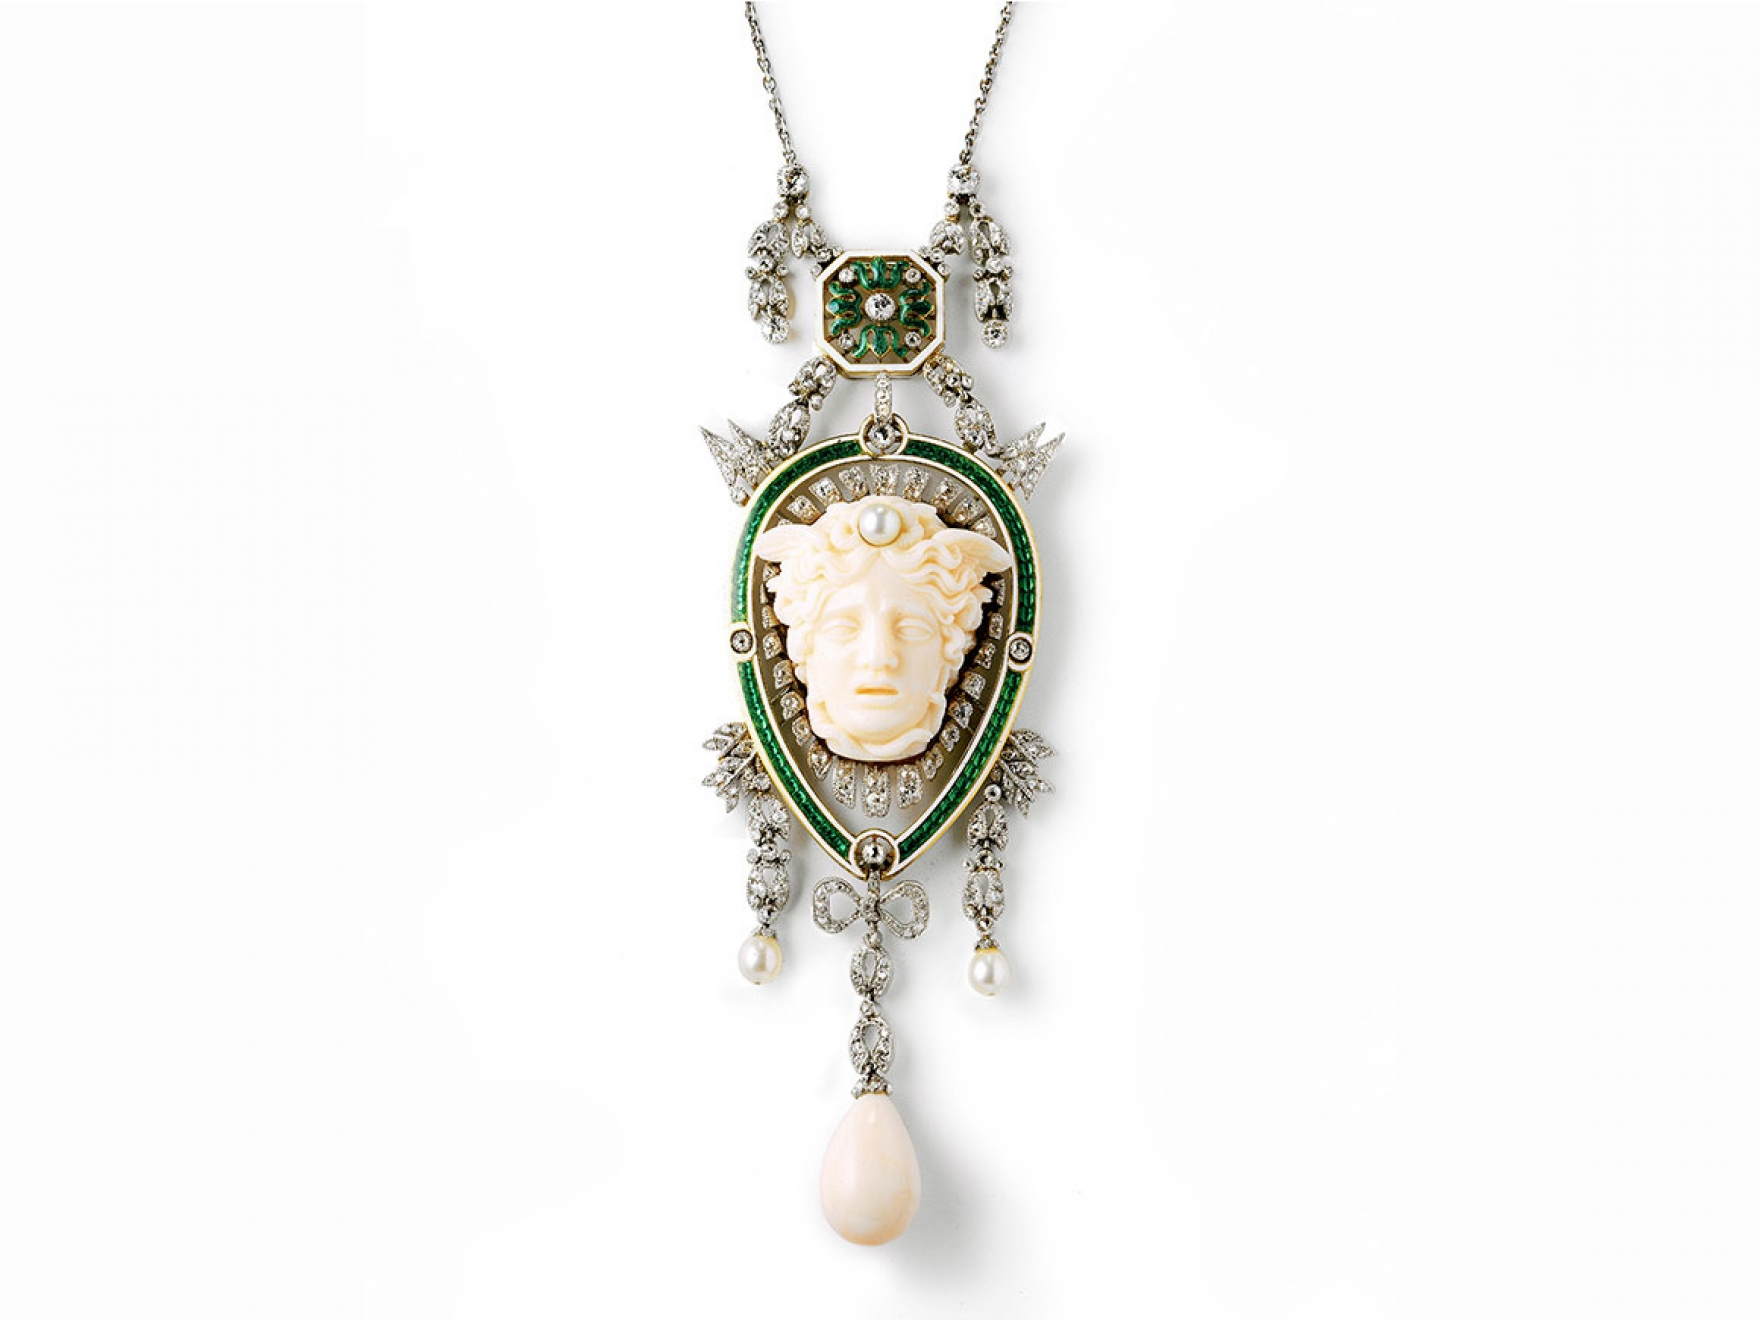 Cartier pendant with head of Medusa, made of platinum, gold, enamel, diamond, pearl, and coral.